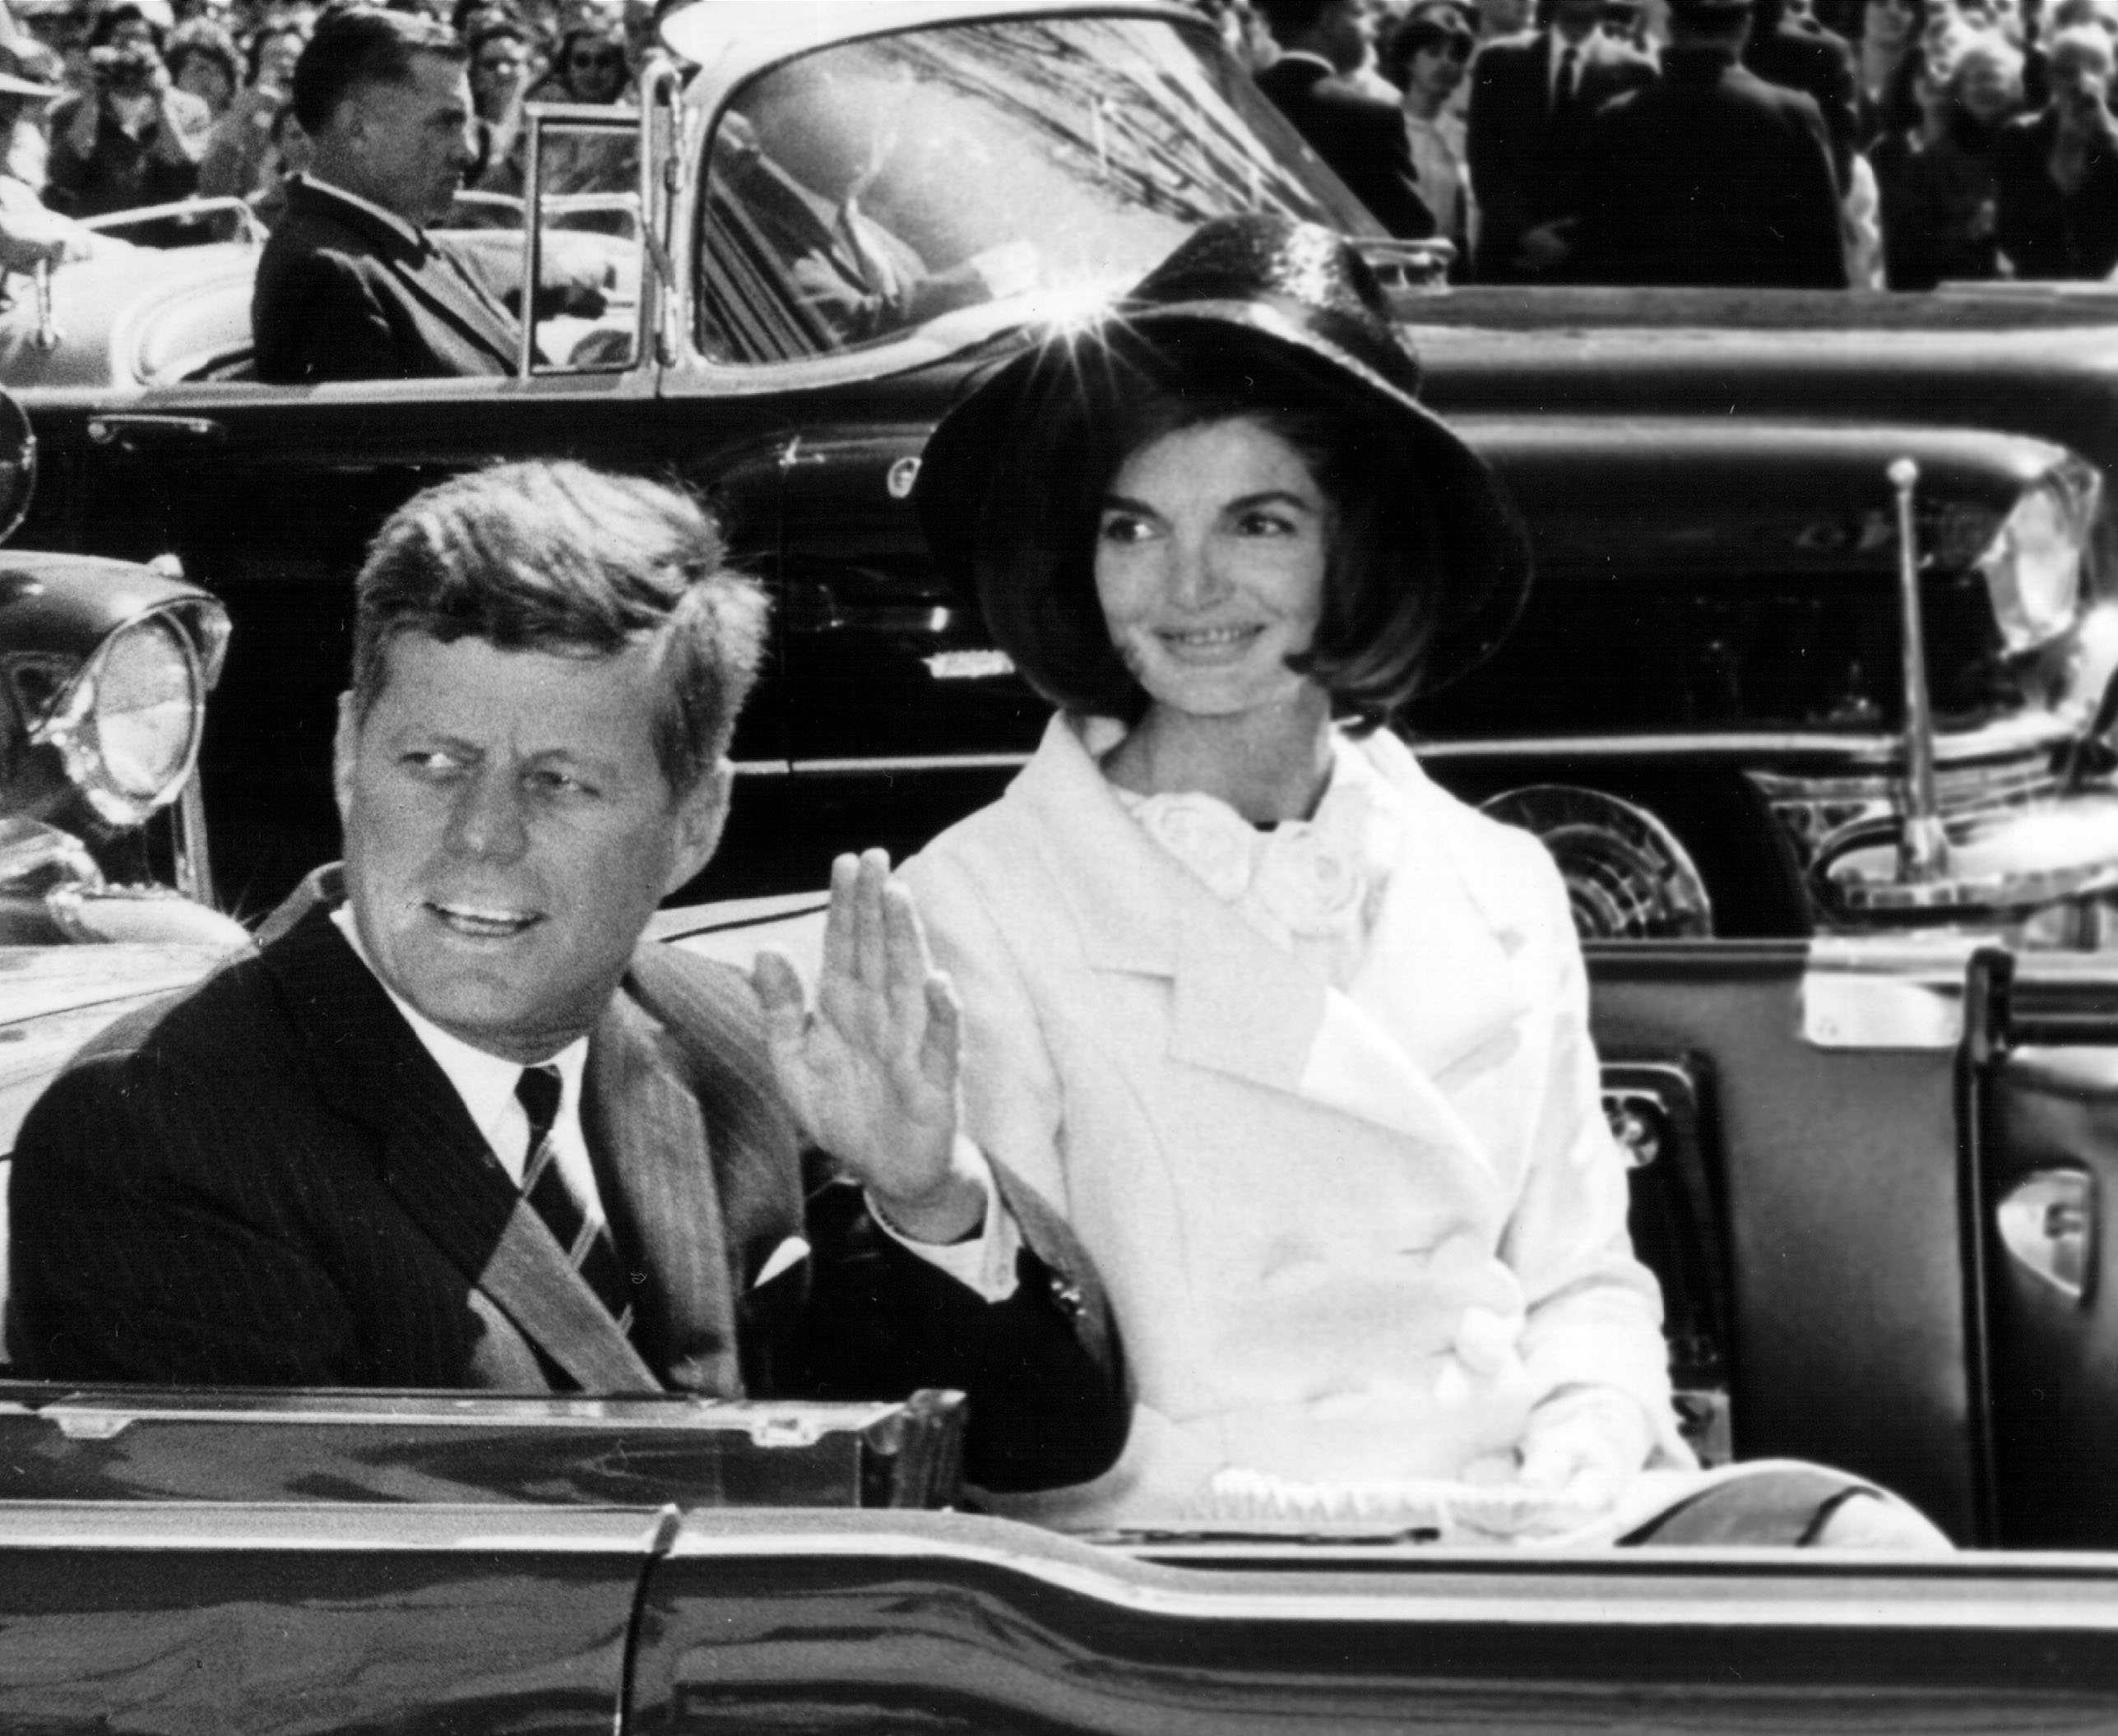 President JFK and Jackie Kennedy at a parade, 1963 | Photo: Getty Images